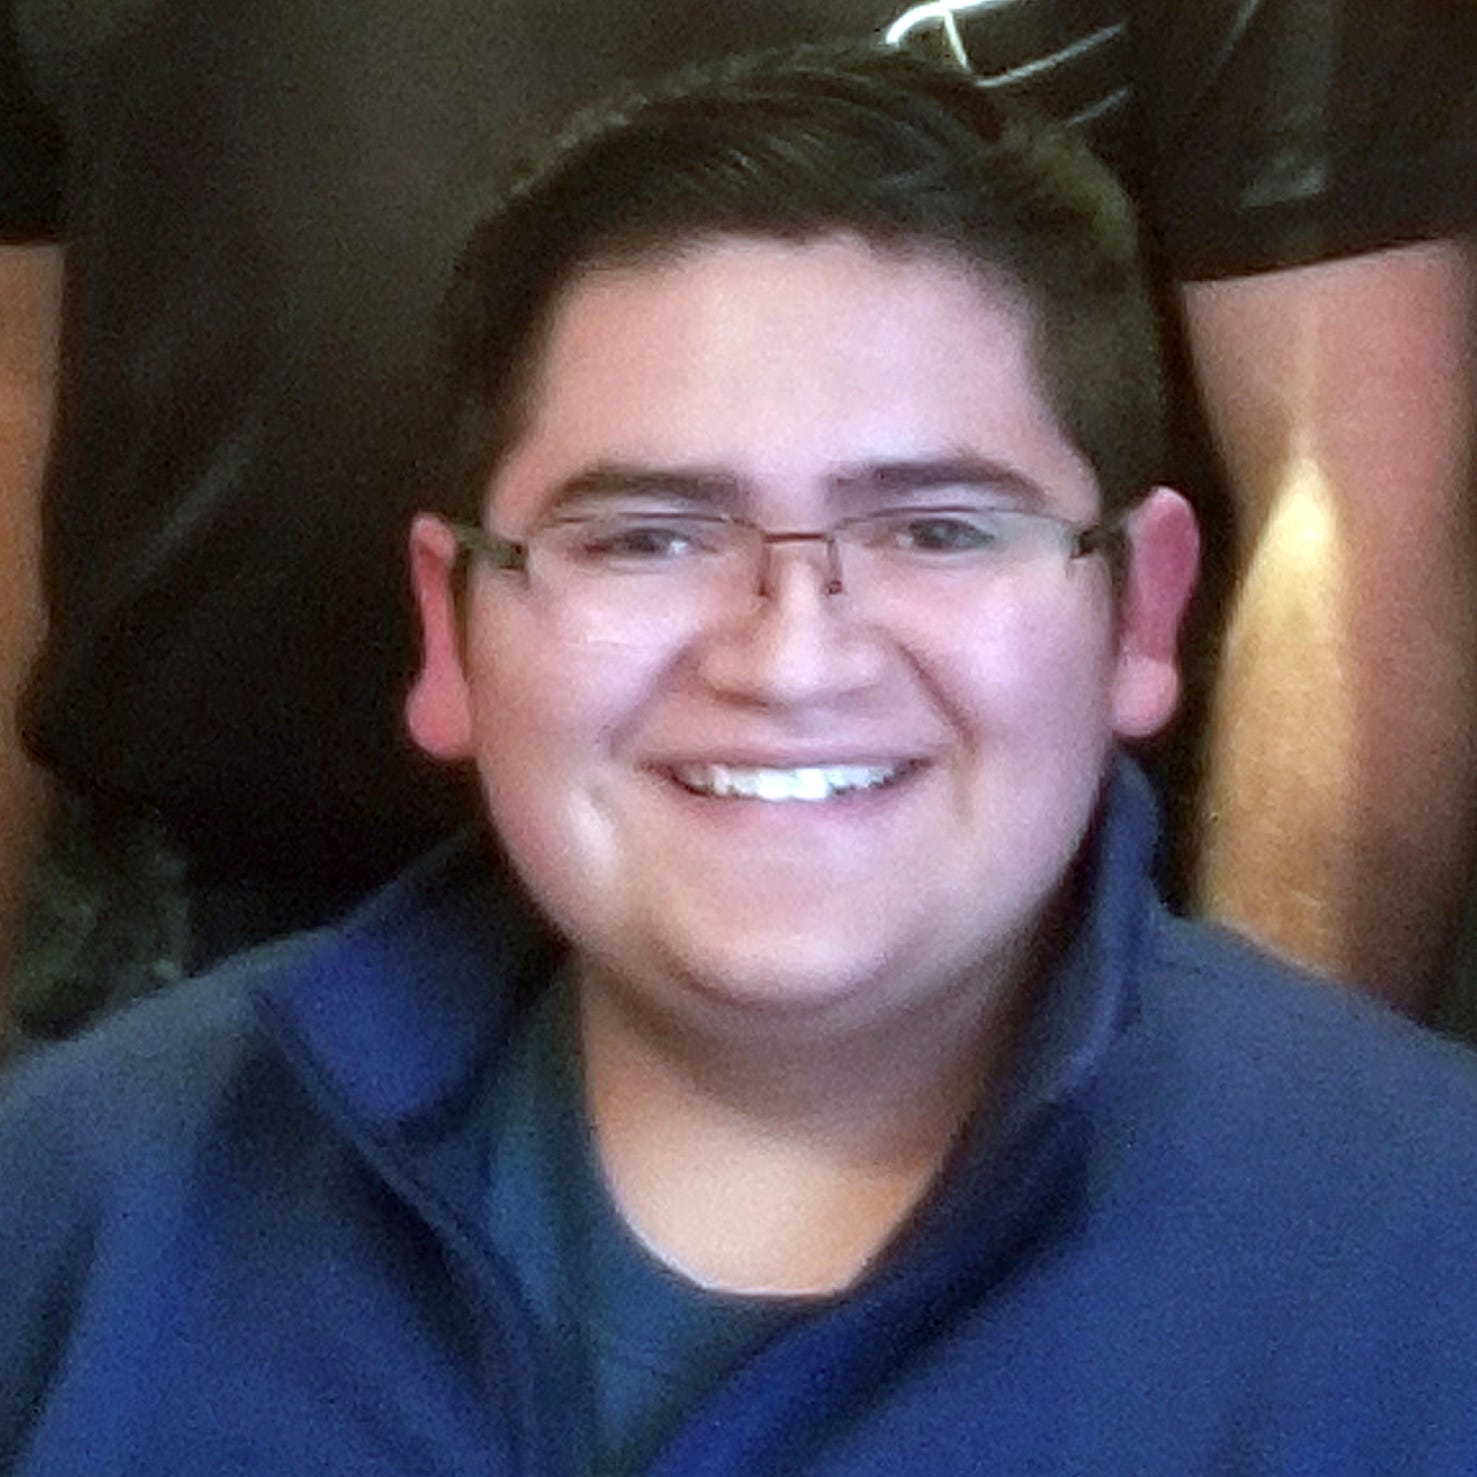 Kendrick Castillo who died trying to stop Denver school shooter: 'That's what I'm doing'